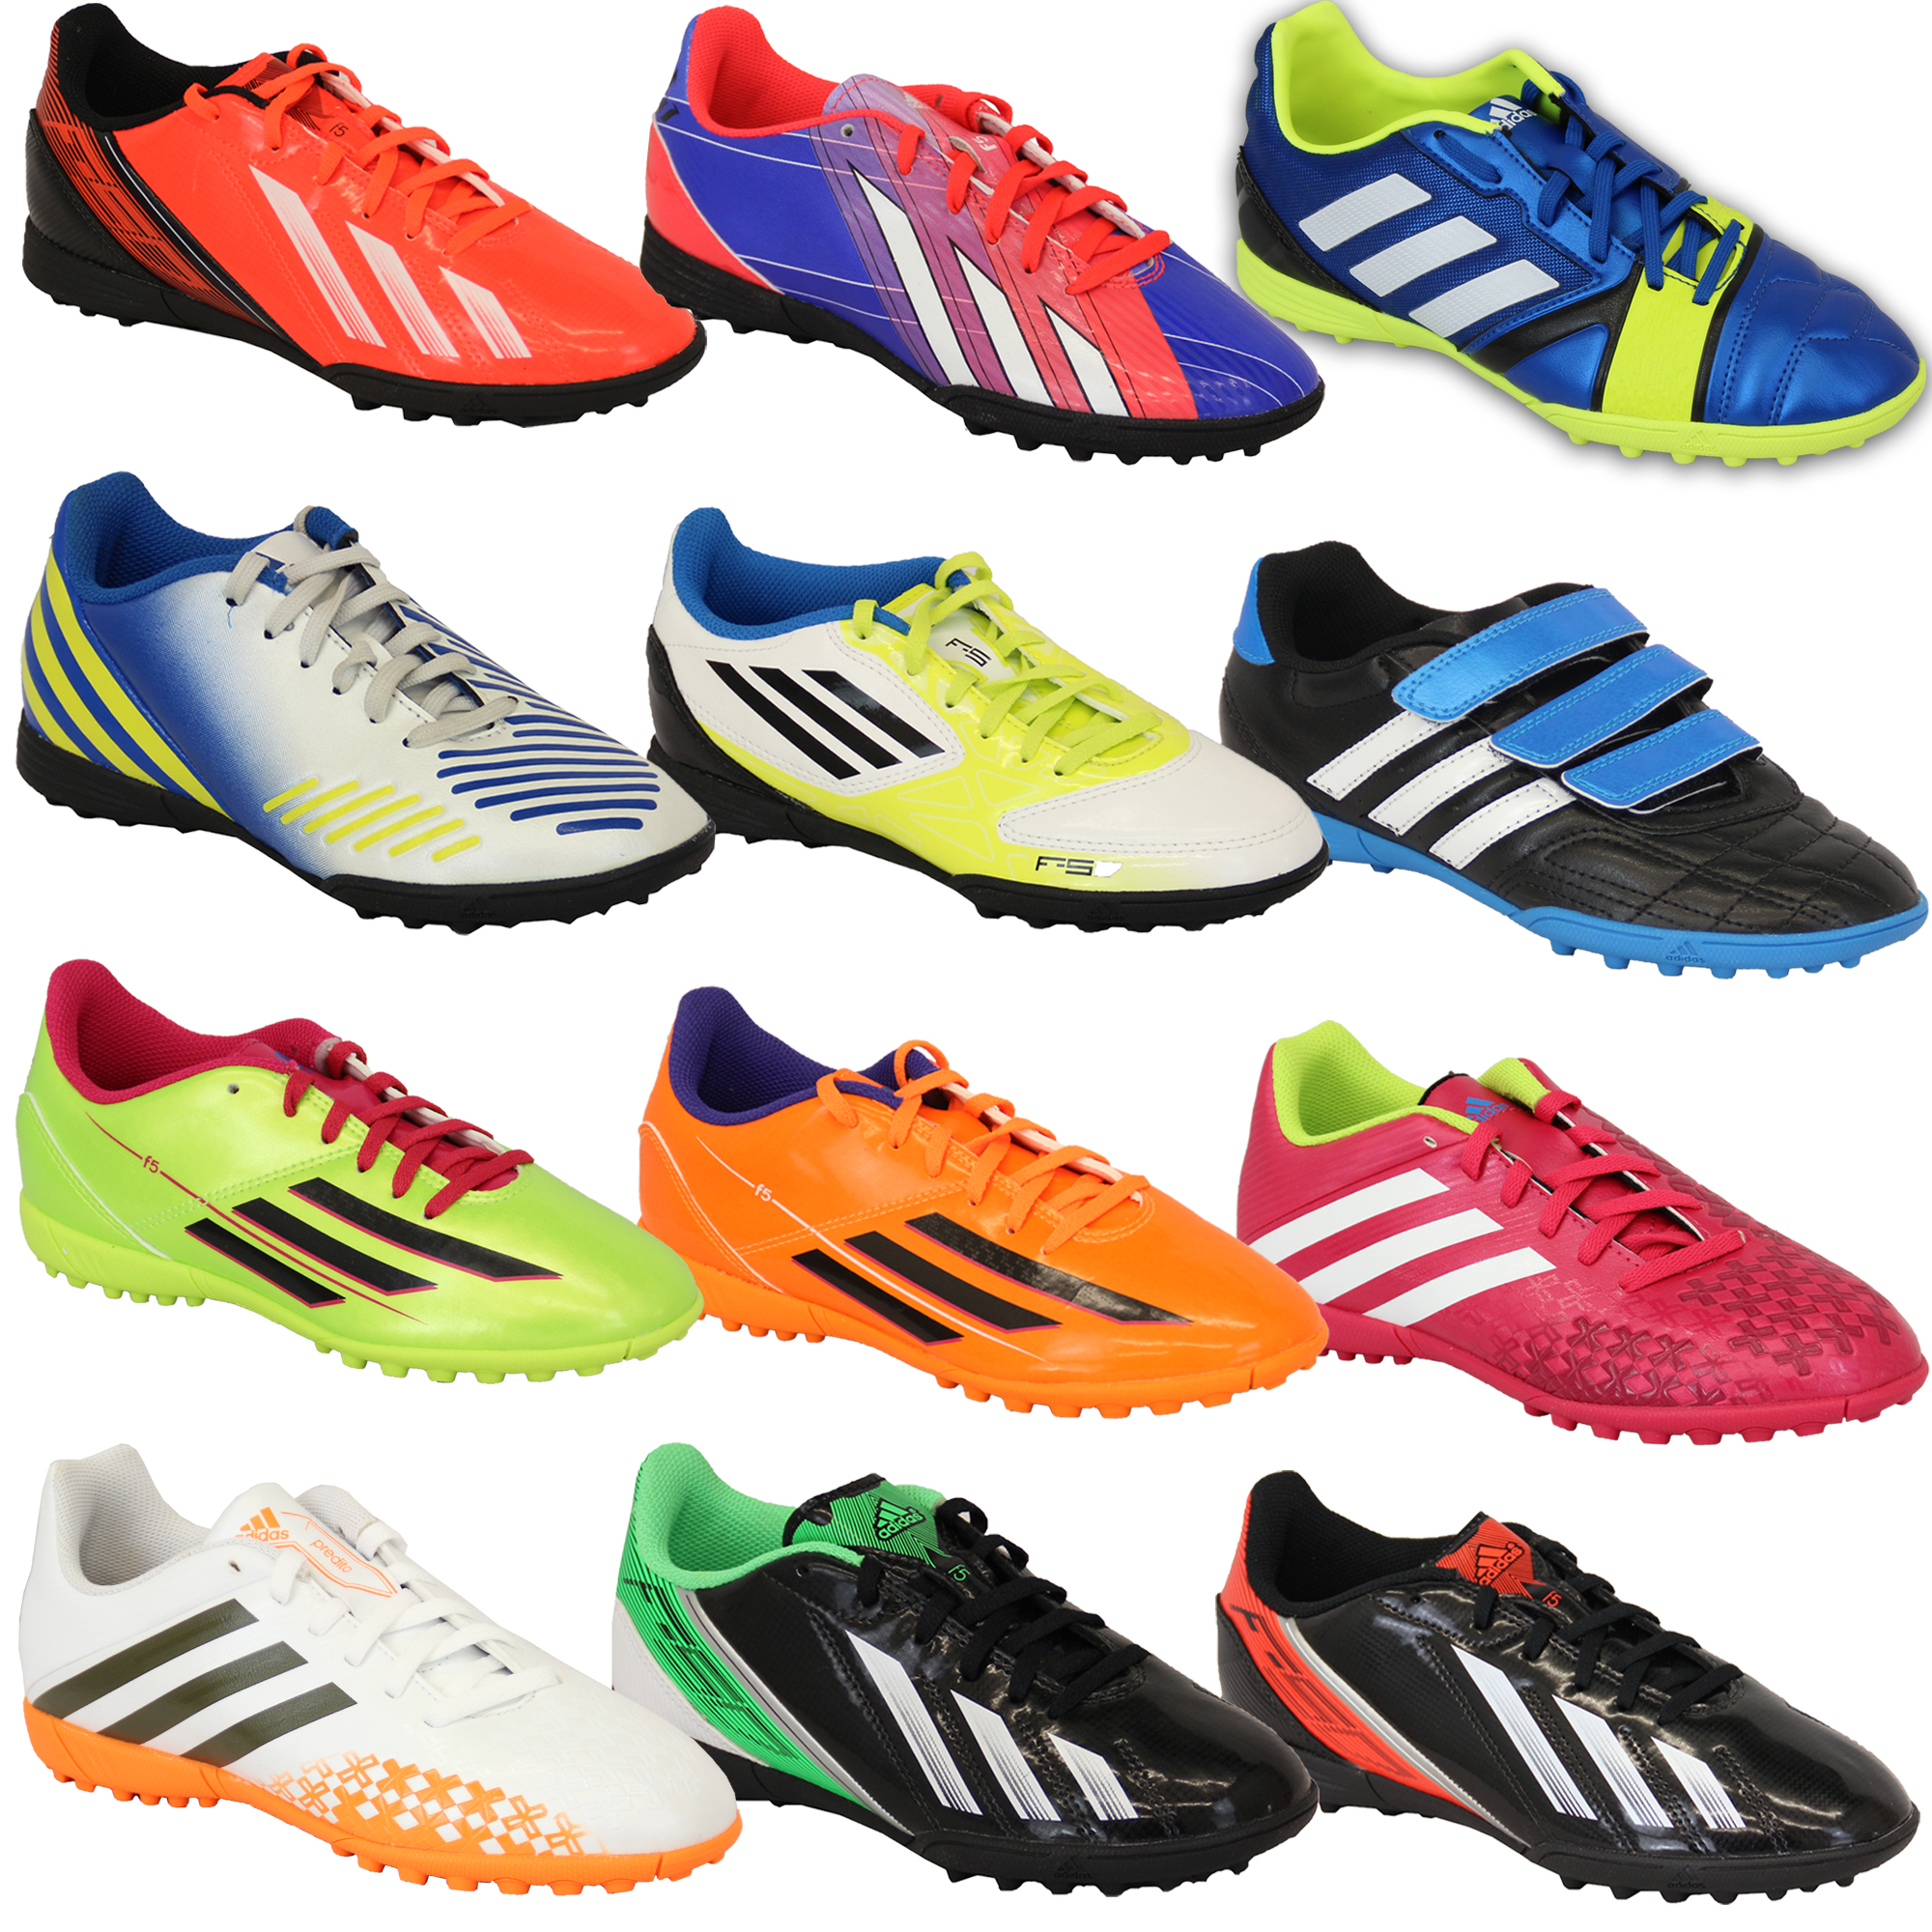 Boys-ADIDAS-Trainers-Kids-Football-Soccer-Astro-Turf-Shoes-Lace-Up-Neon-Youth thumbnail 11